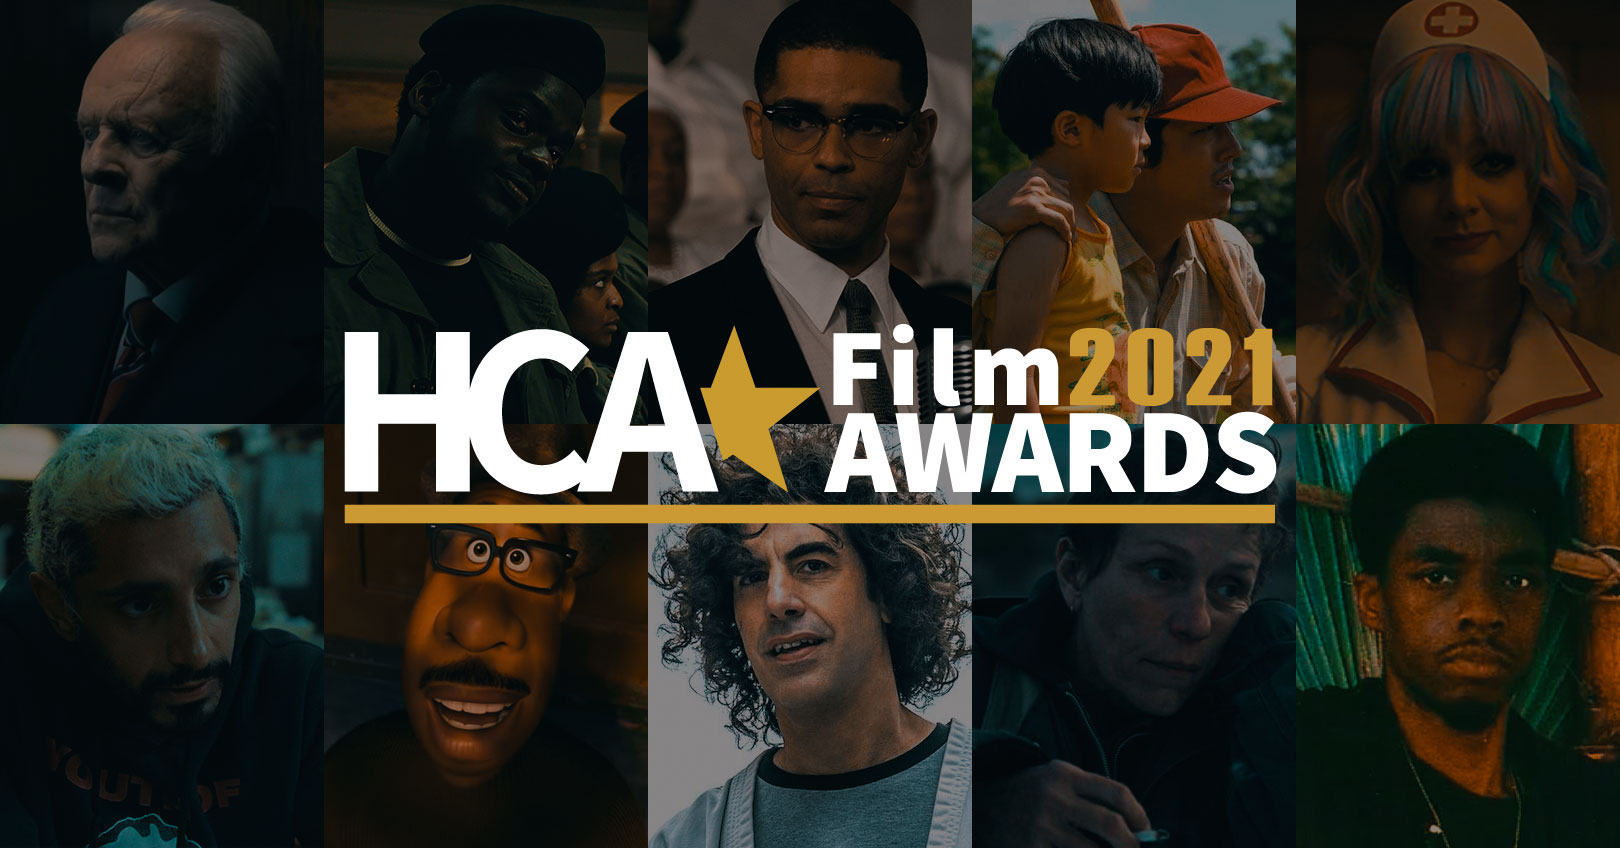 Hollywood Critics Association Film Awards 2021